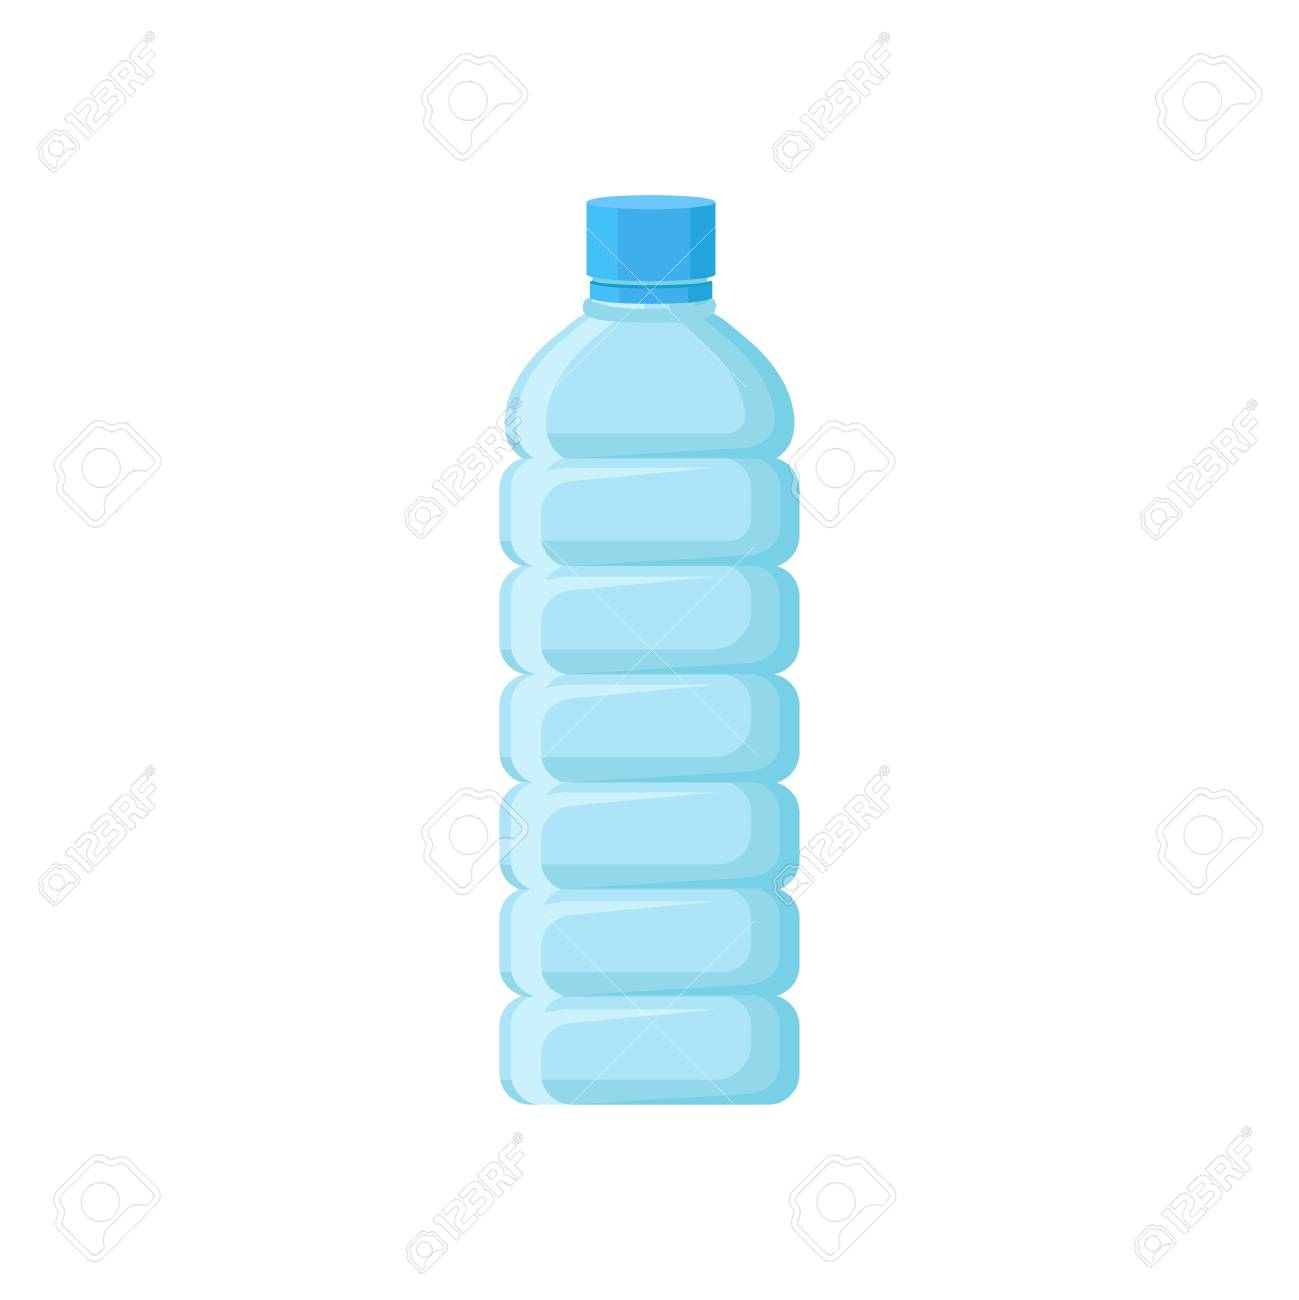 Empty Plastic Bottle With Blue Lid Transparent Container For Royalty Free Cliparts Vectors And Stock Illustration Image 102582867